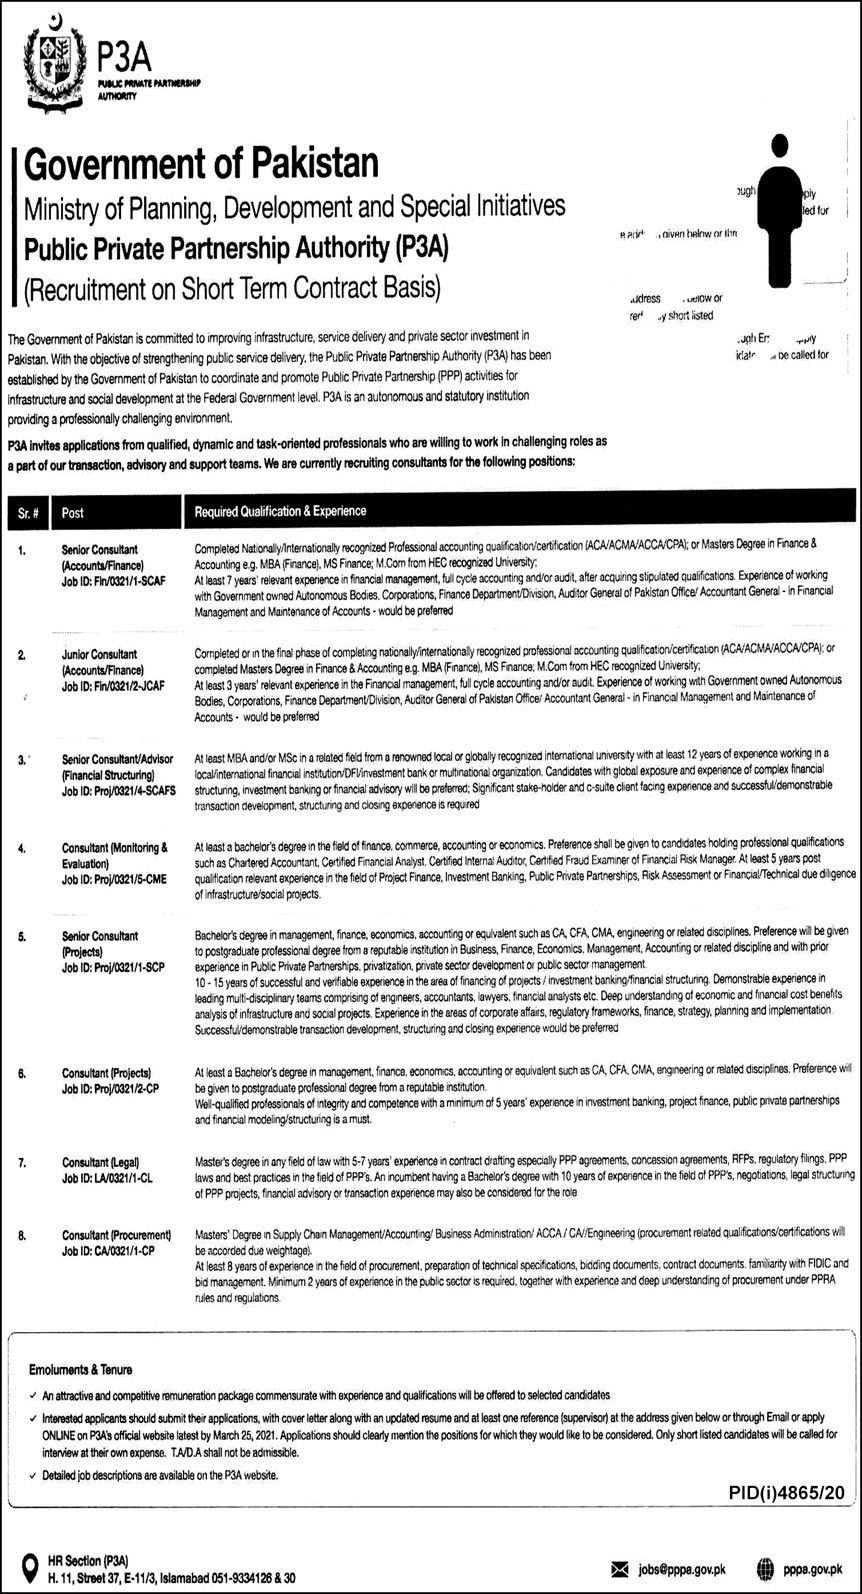 Ministry of Planning Development and Special Initiatives Islamabad Jobs 2021 in Pakistan - Latest Govt Jobs 2021